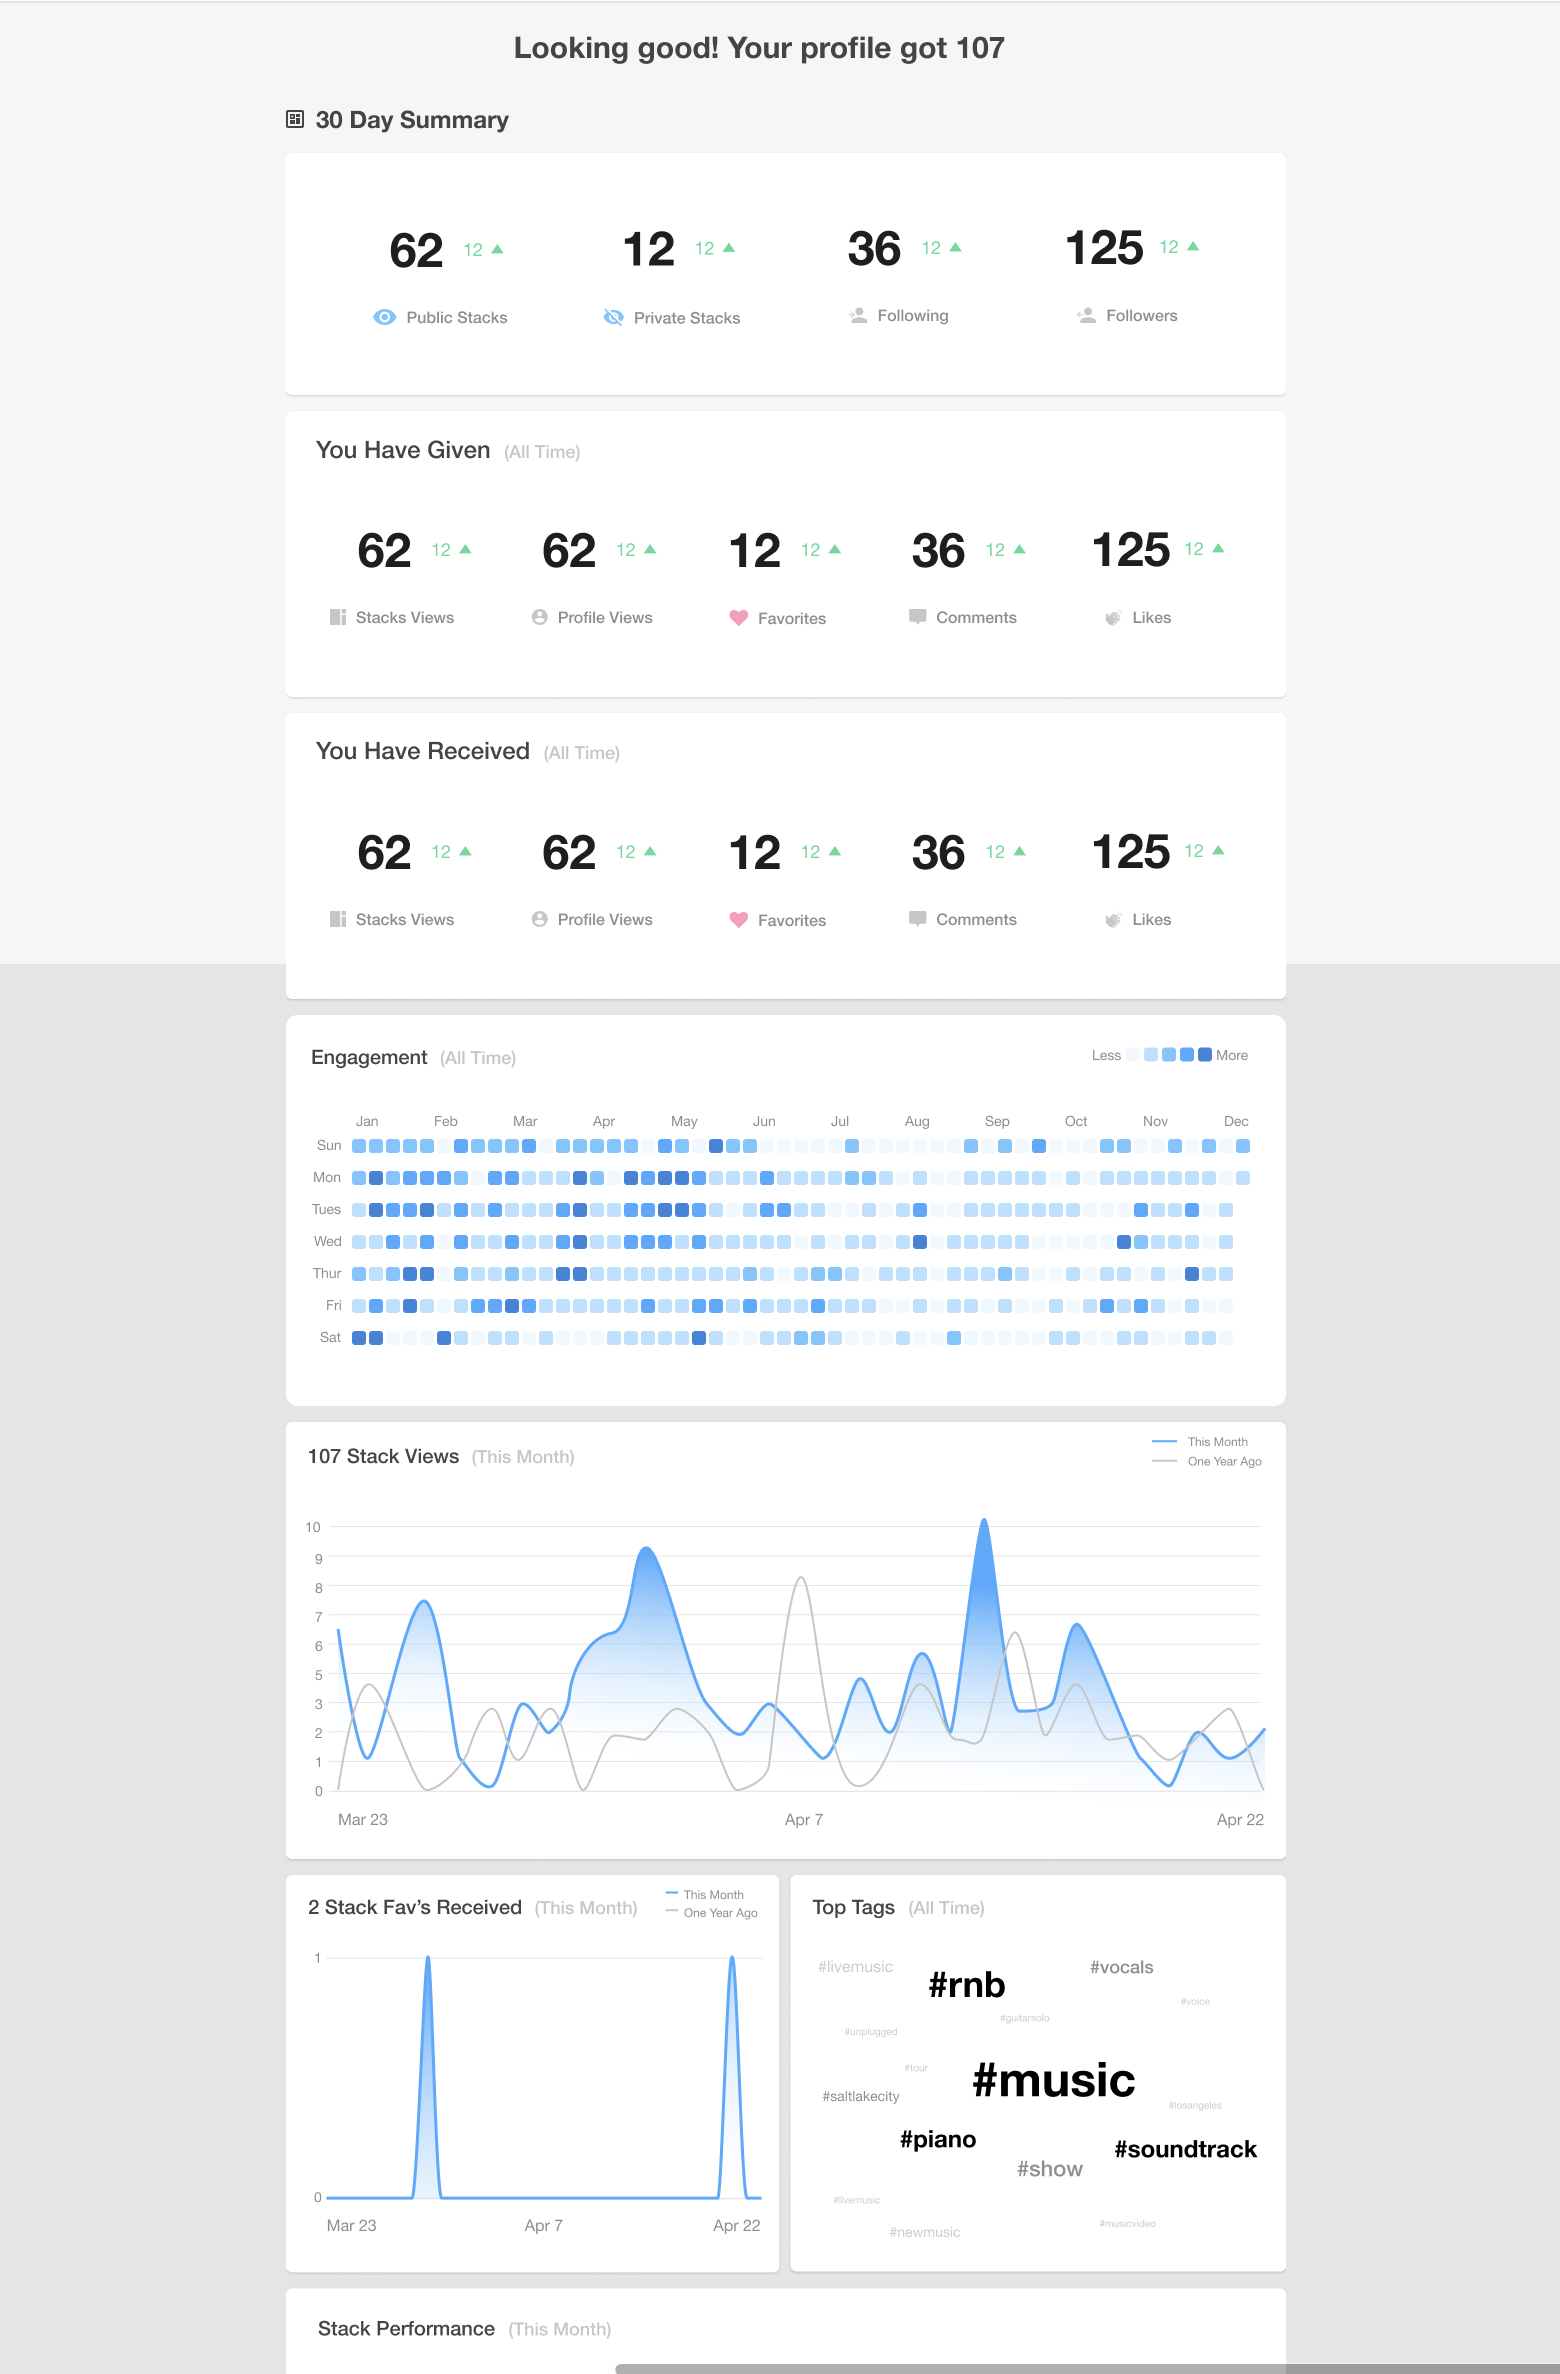 monetization strategy and consumer behavior dashboard